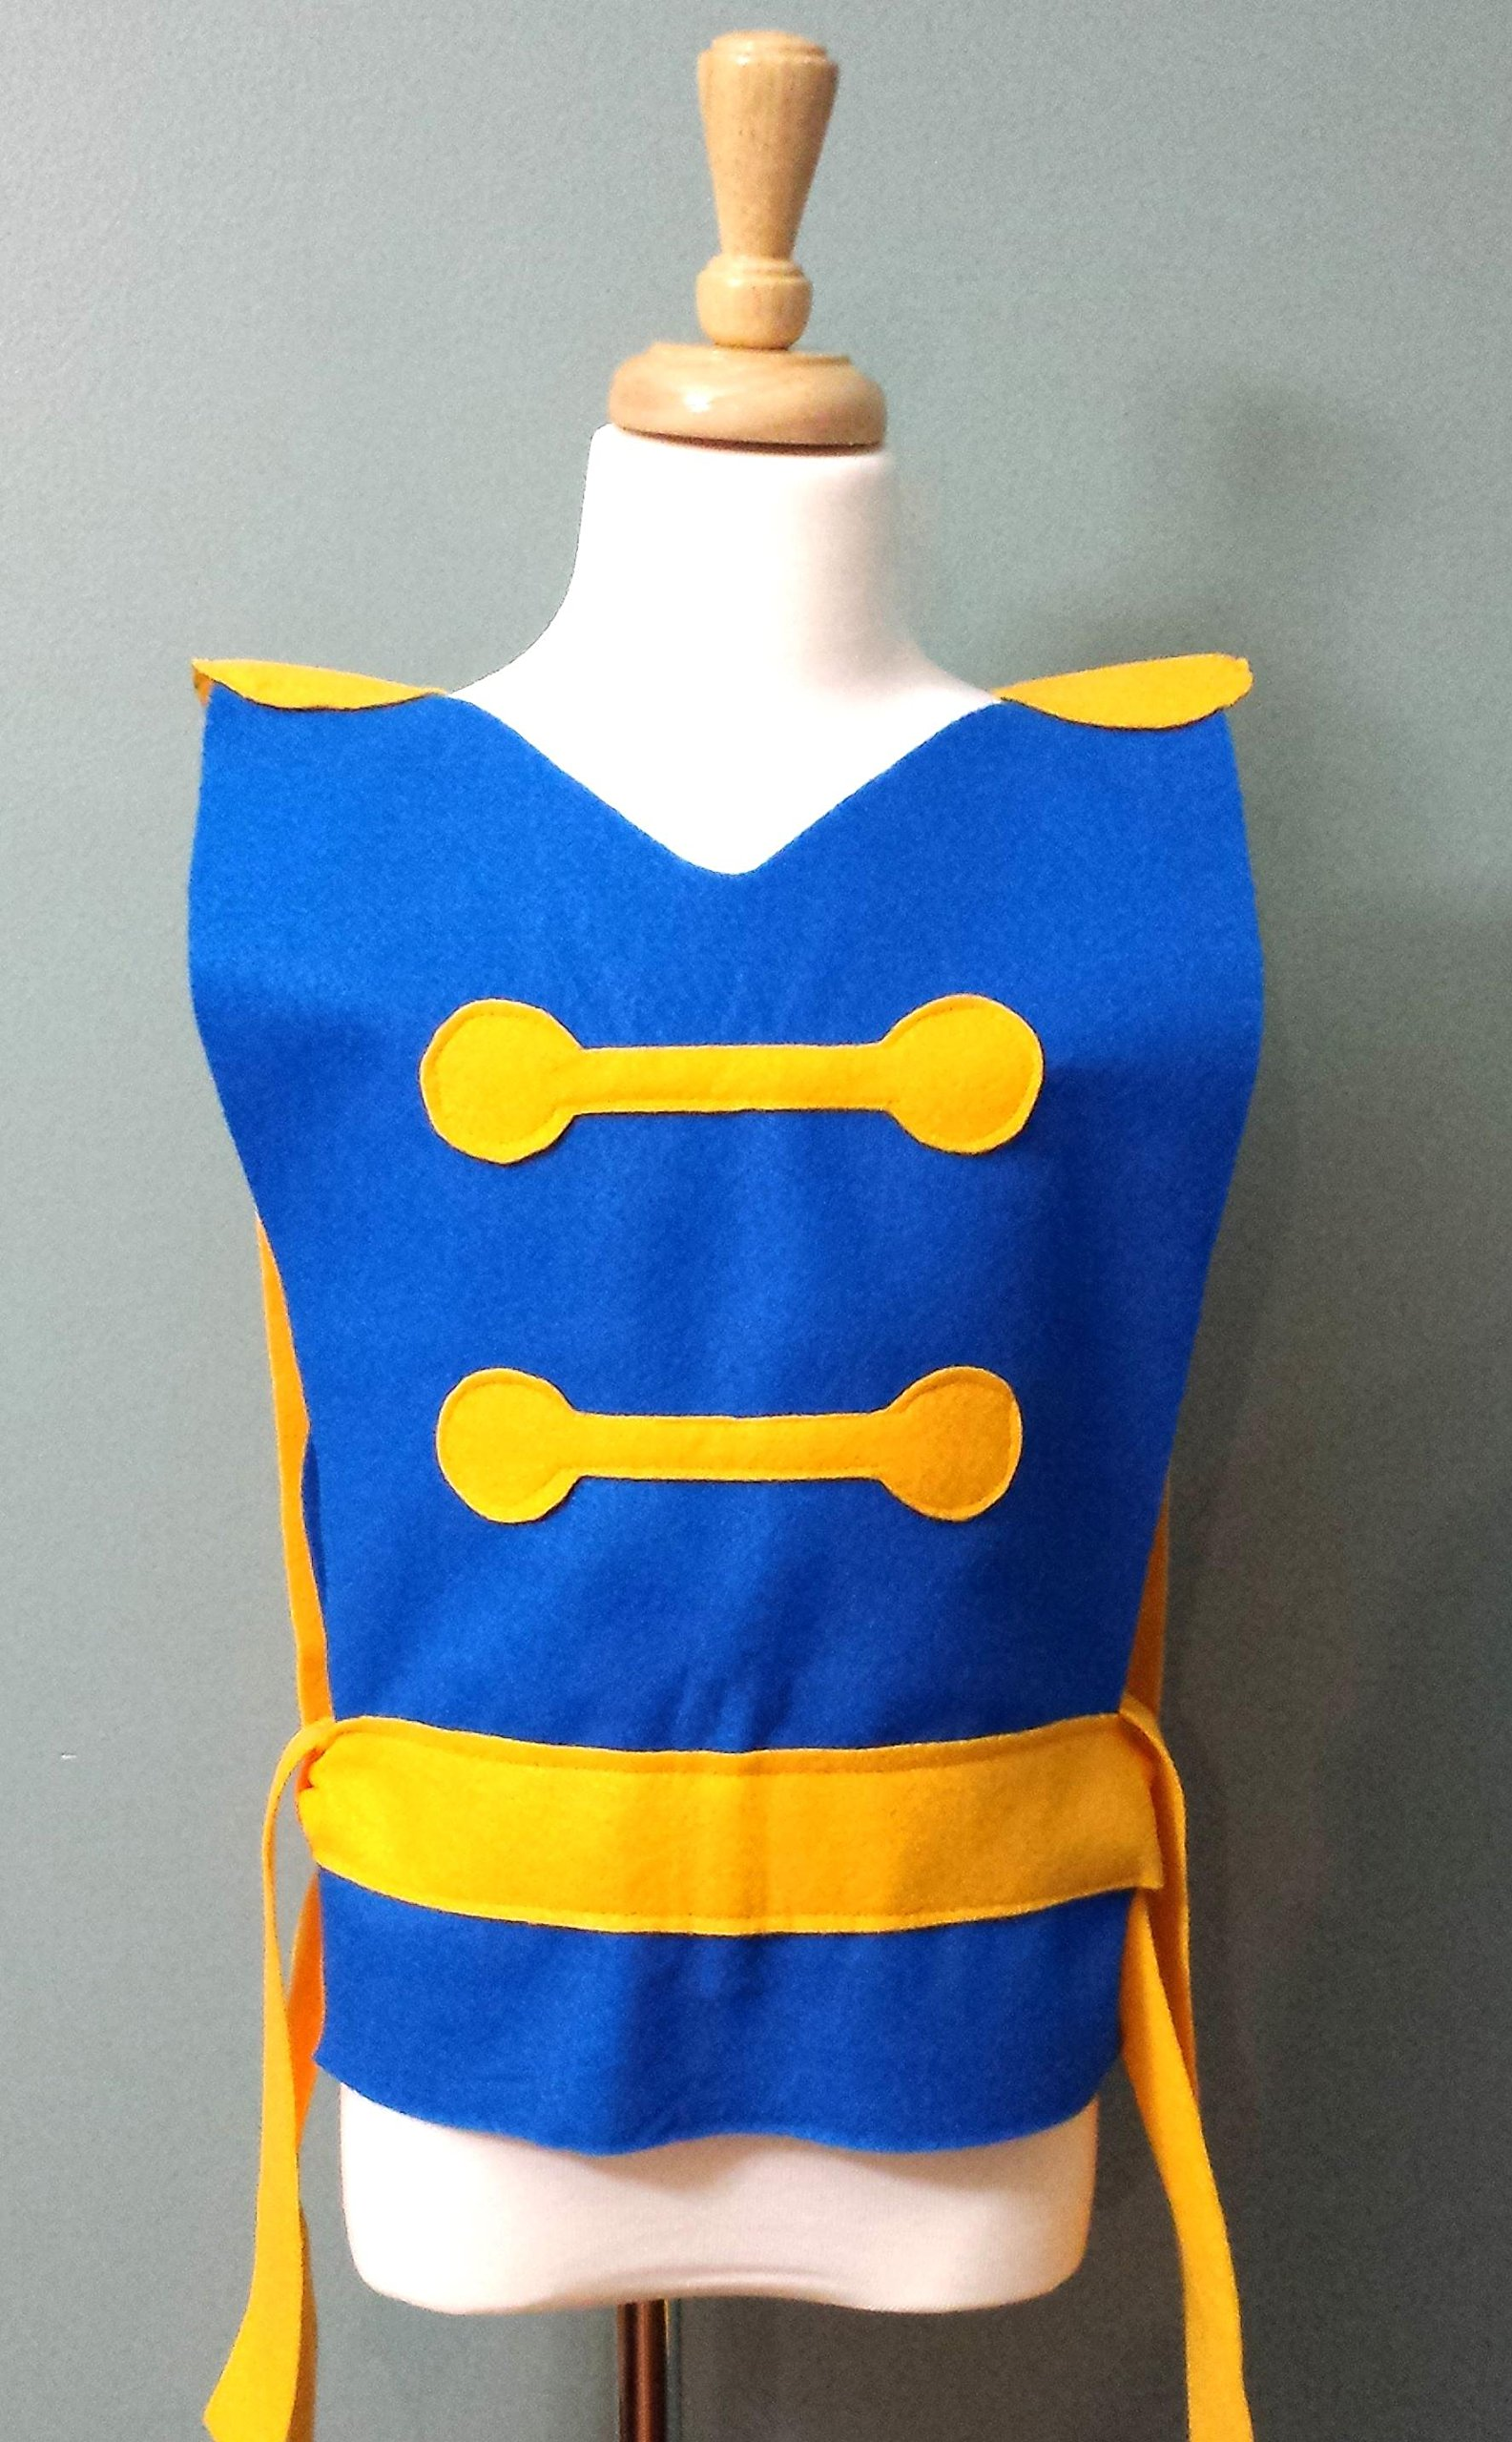 Kids Beast Costume Tunic (Belle's Prince/Beauty and the Beast/Prince Adam)- Baby/Toddler/Kids/Teen/Adult Sizes